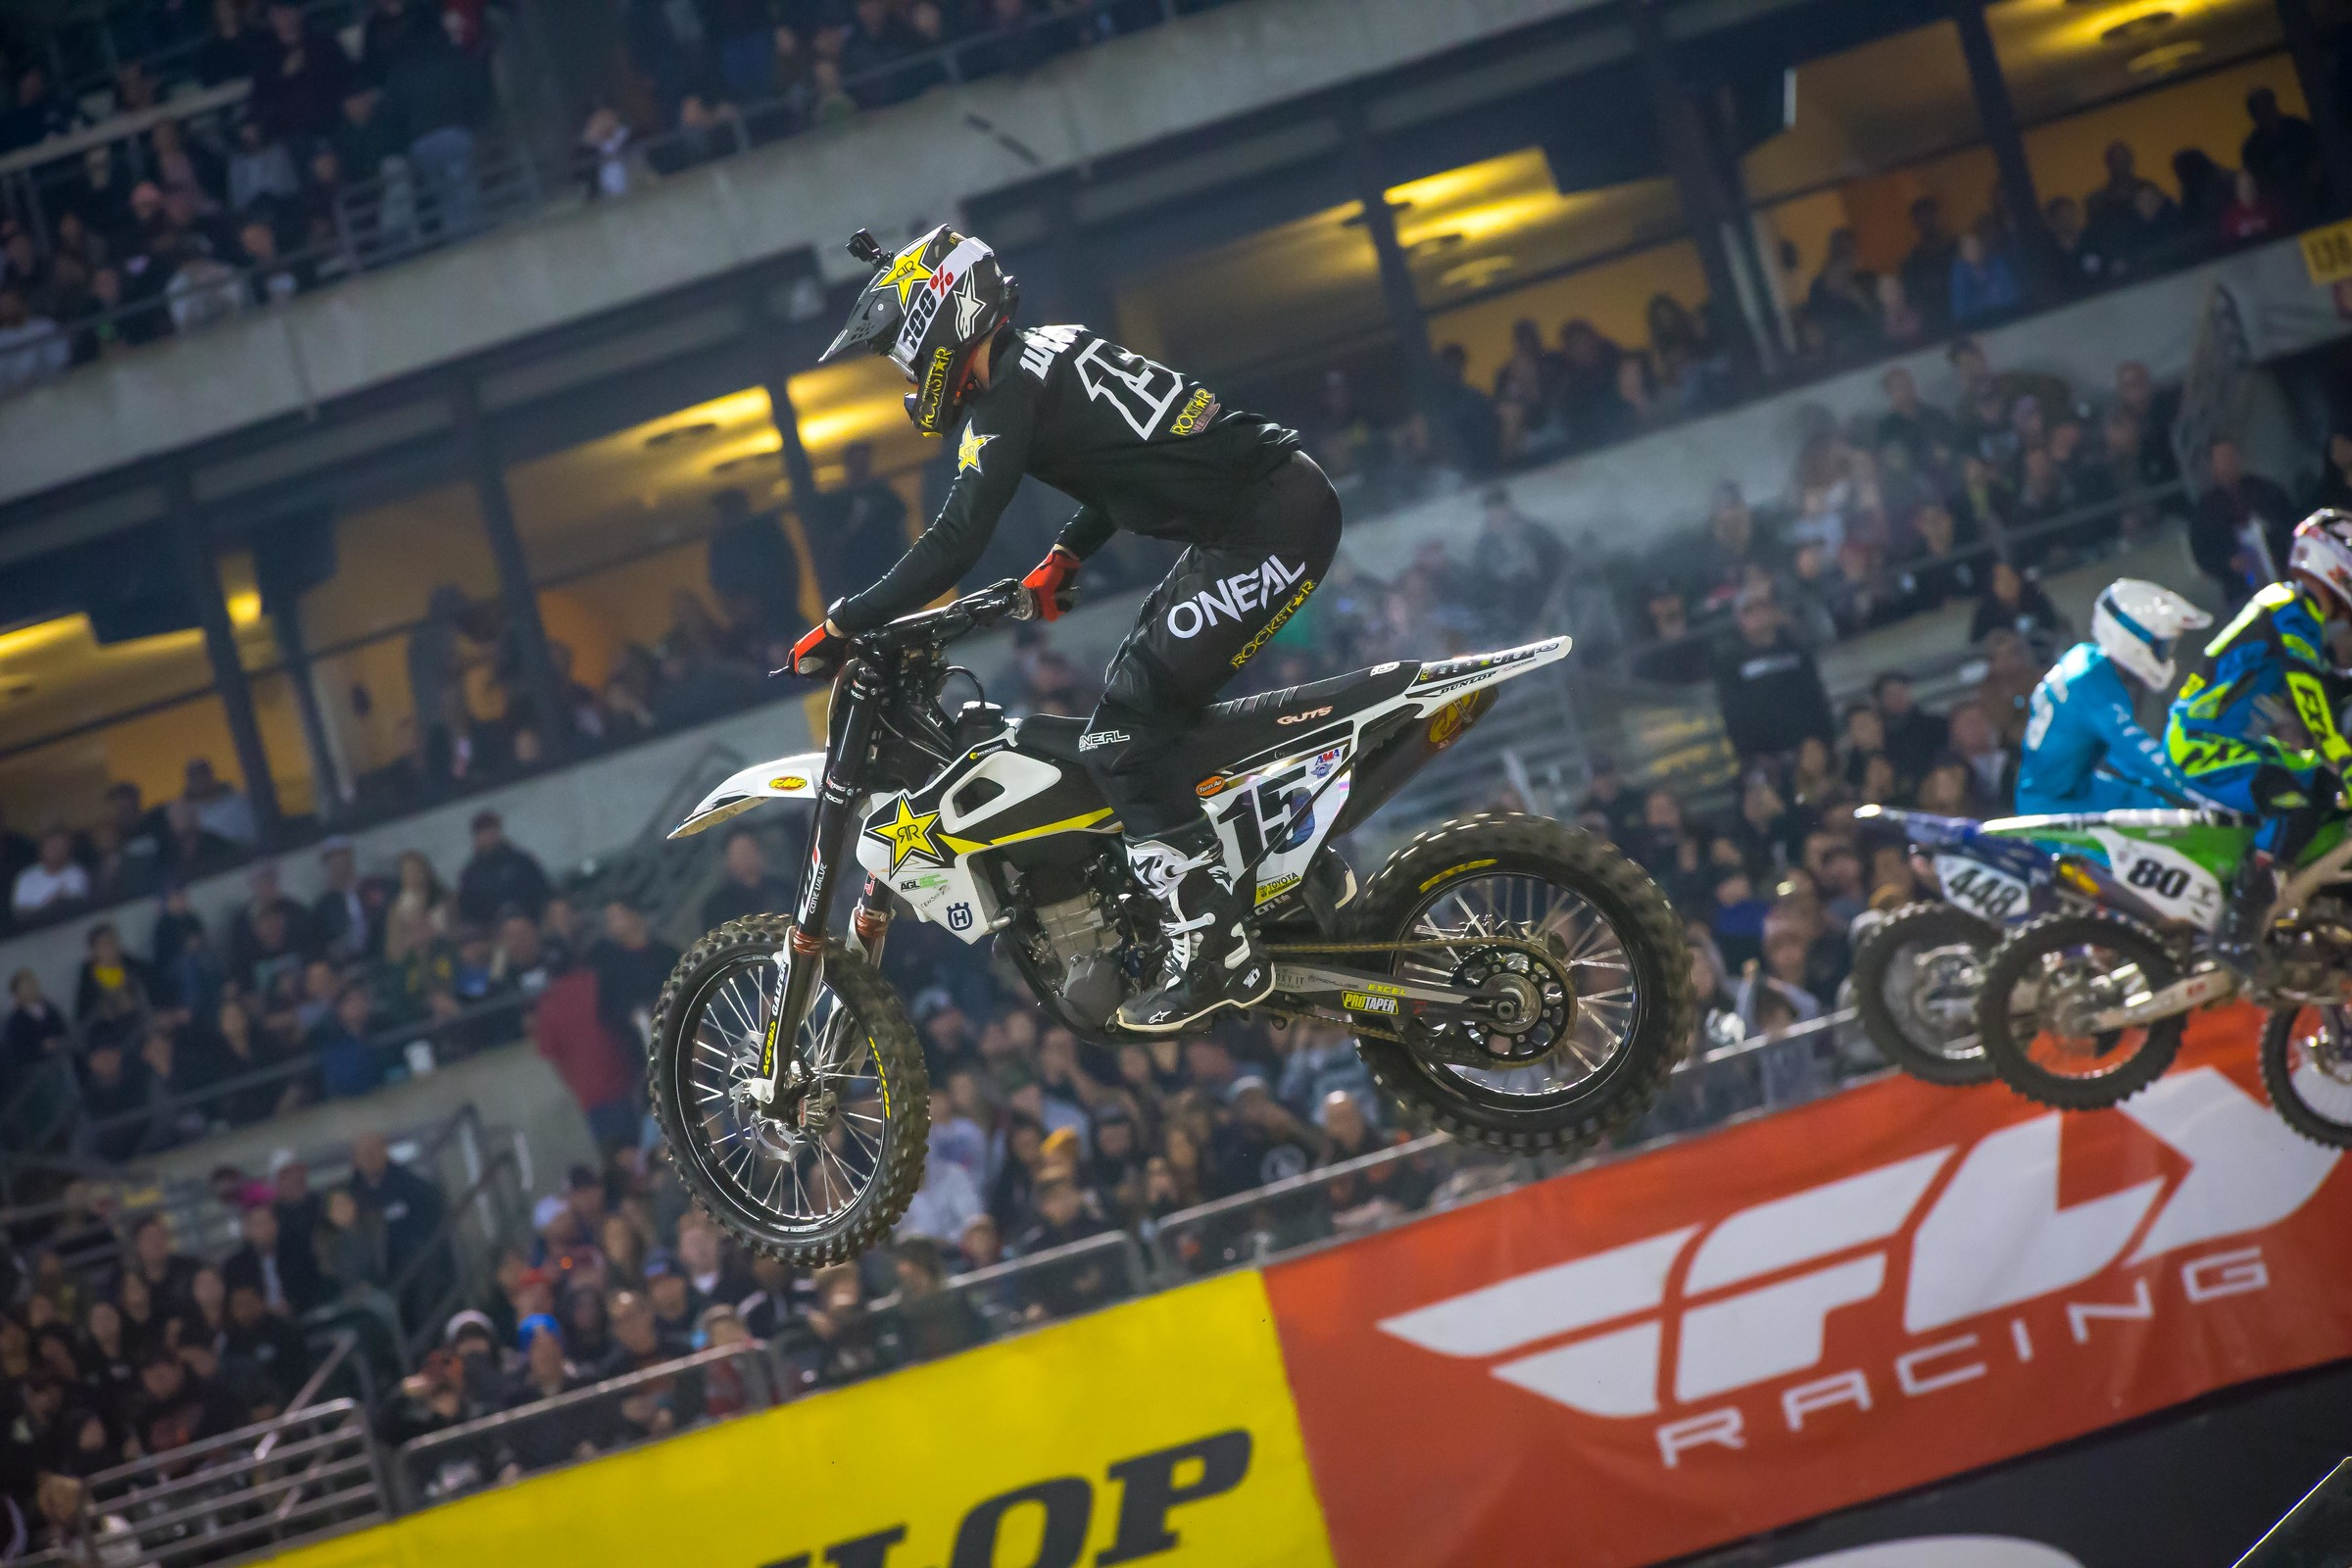 Dean Wilson was quietly solid again, taking sixth in Oakland. He now sits sixth in points.